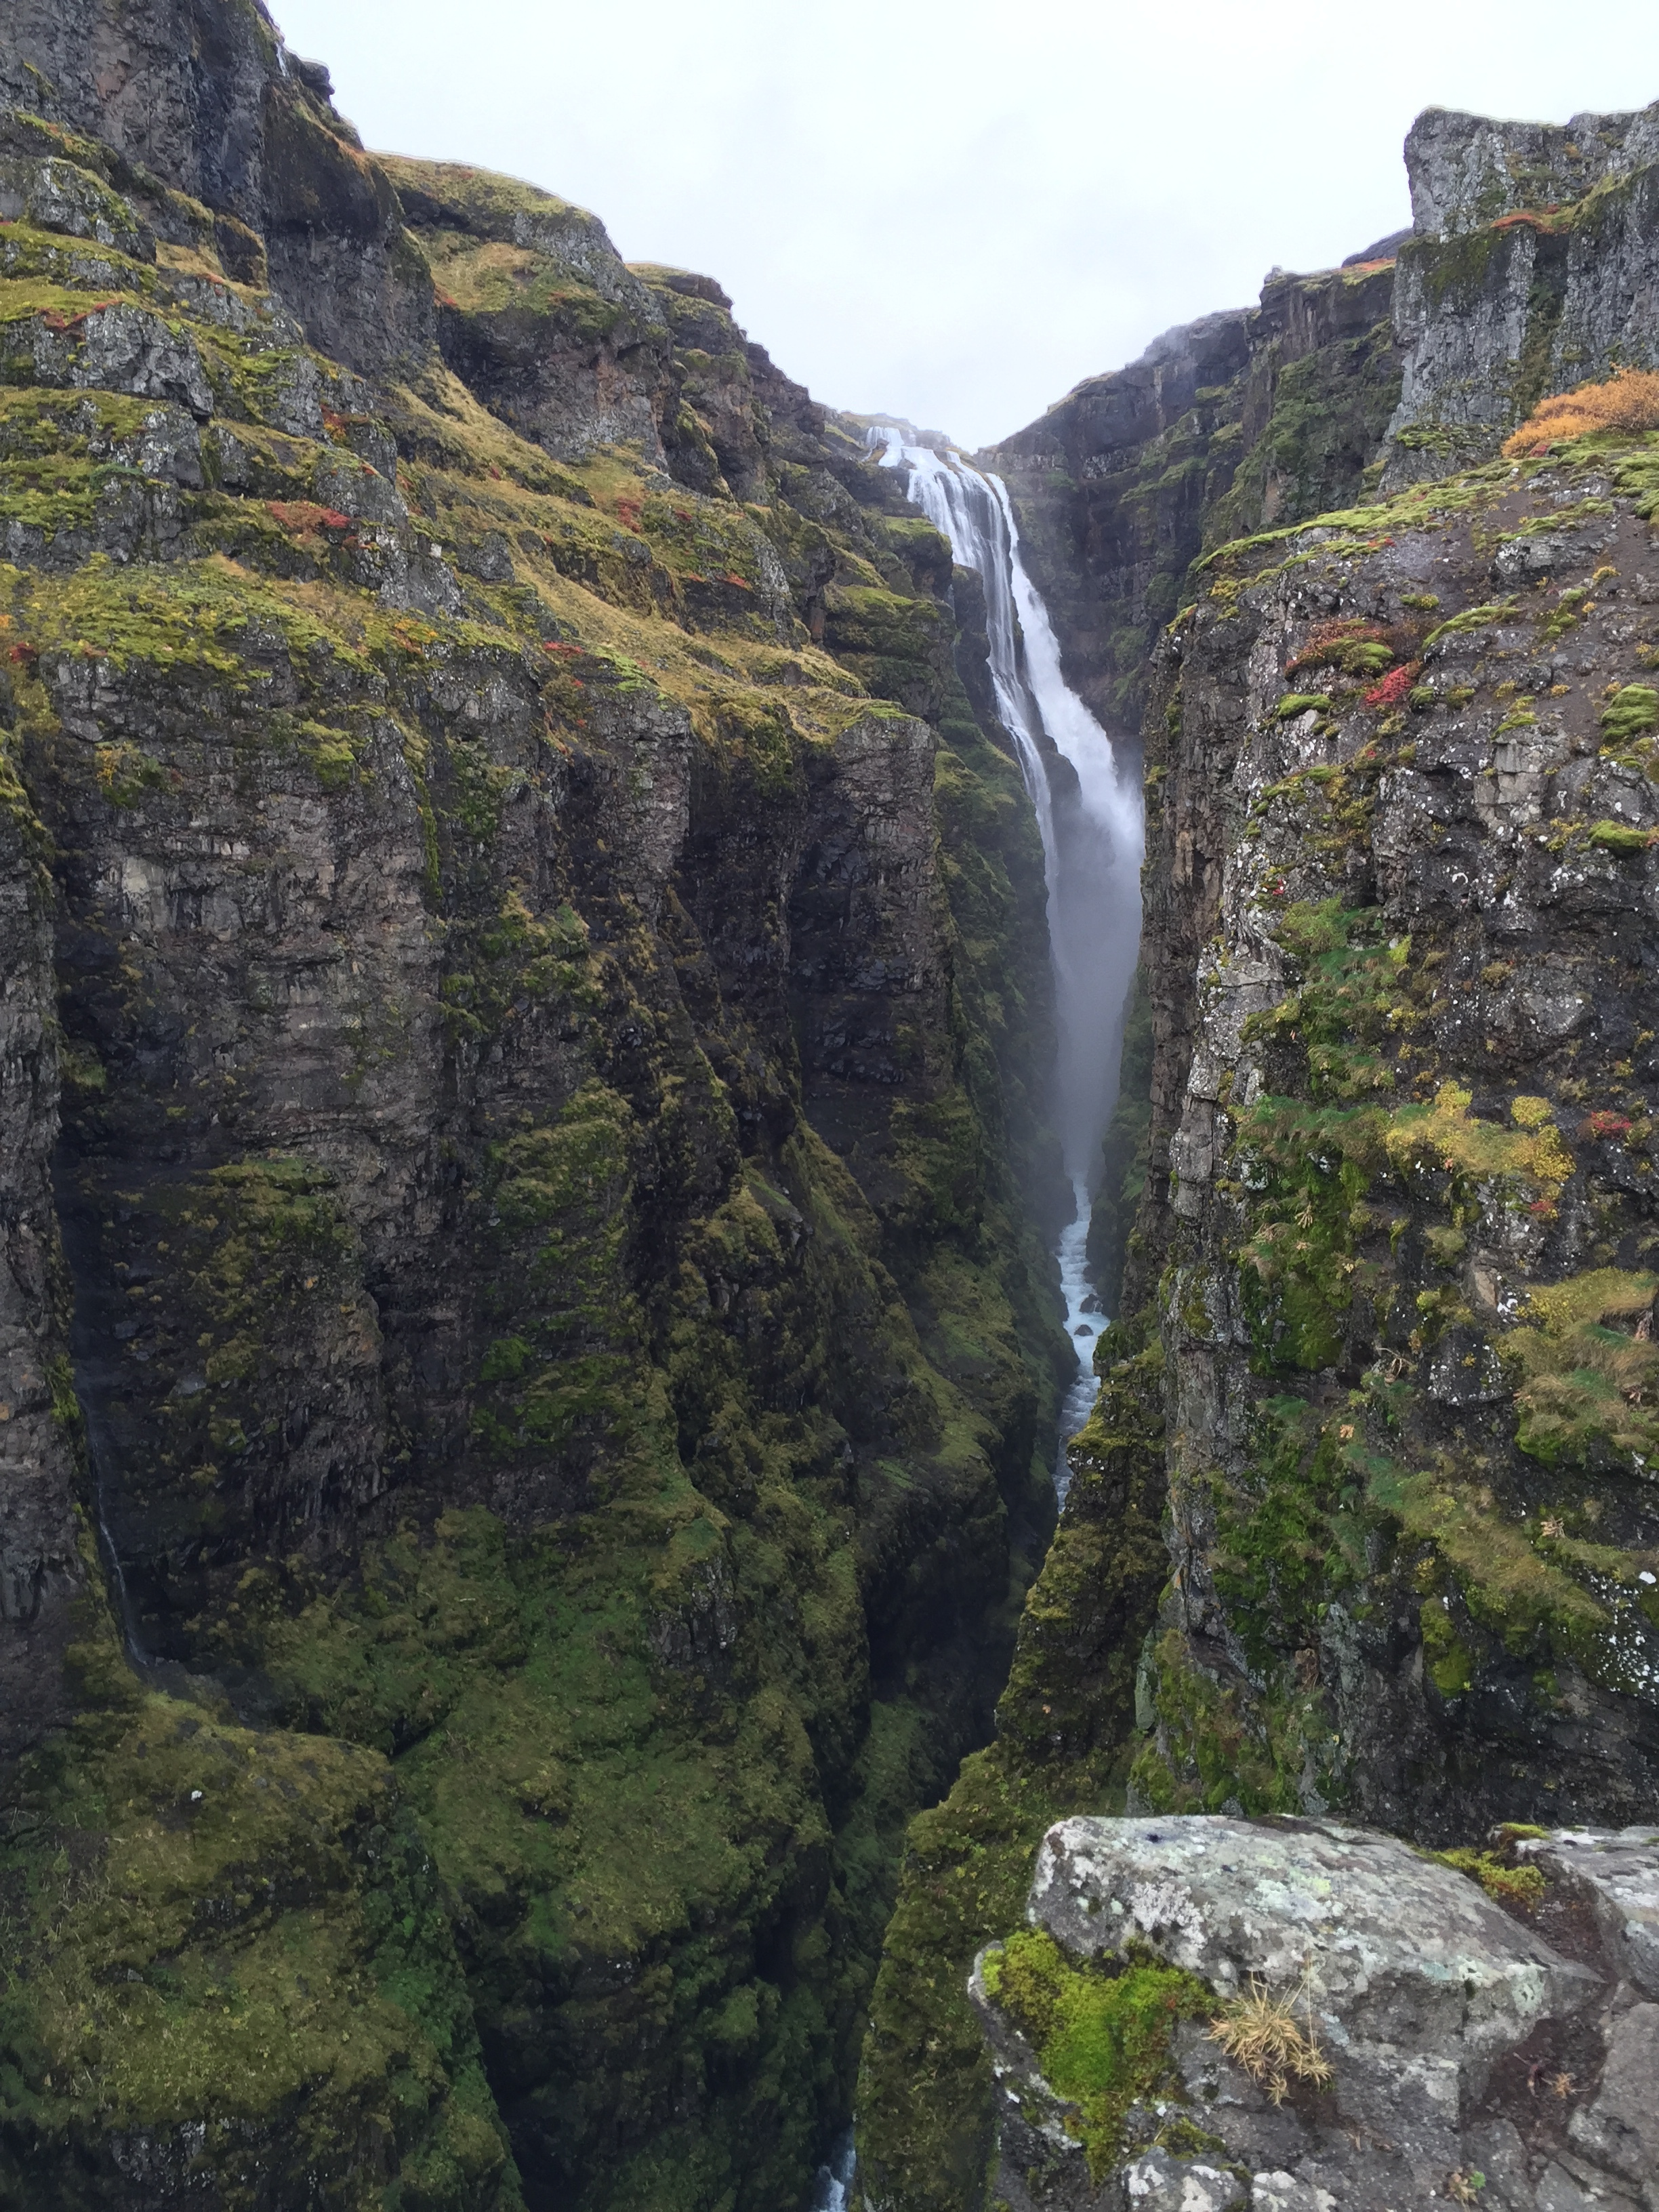 Glymur falls in Iceland. Beautiful but a bit of a challenge to get to.